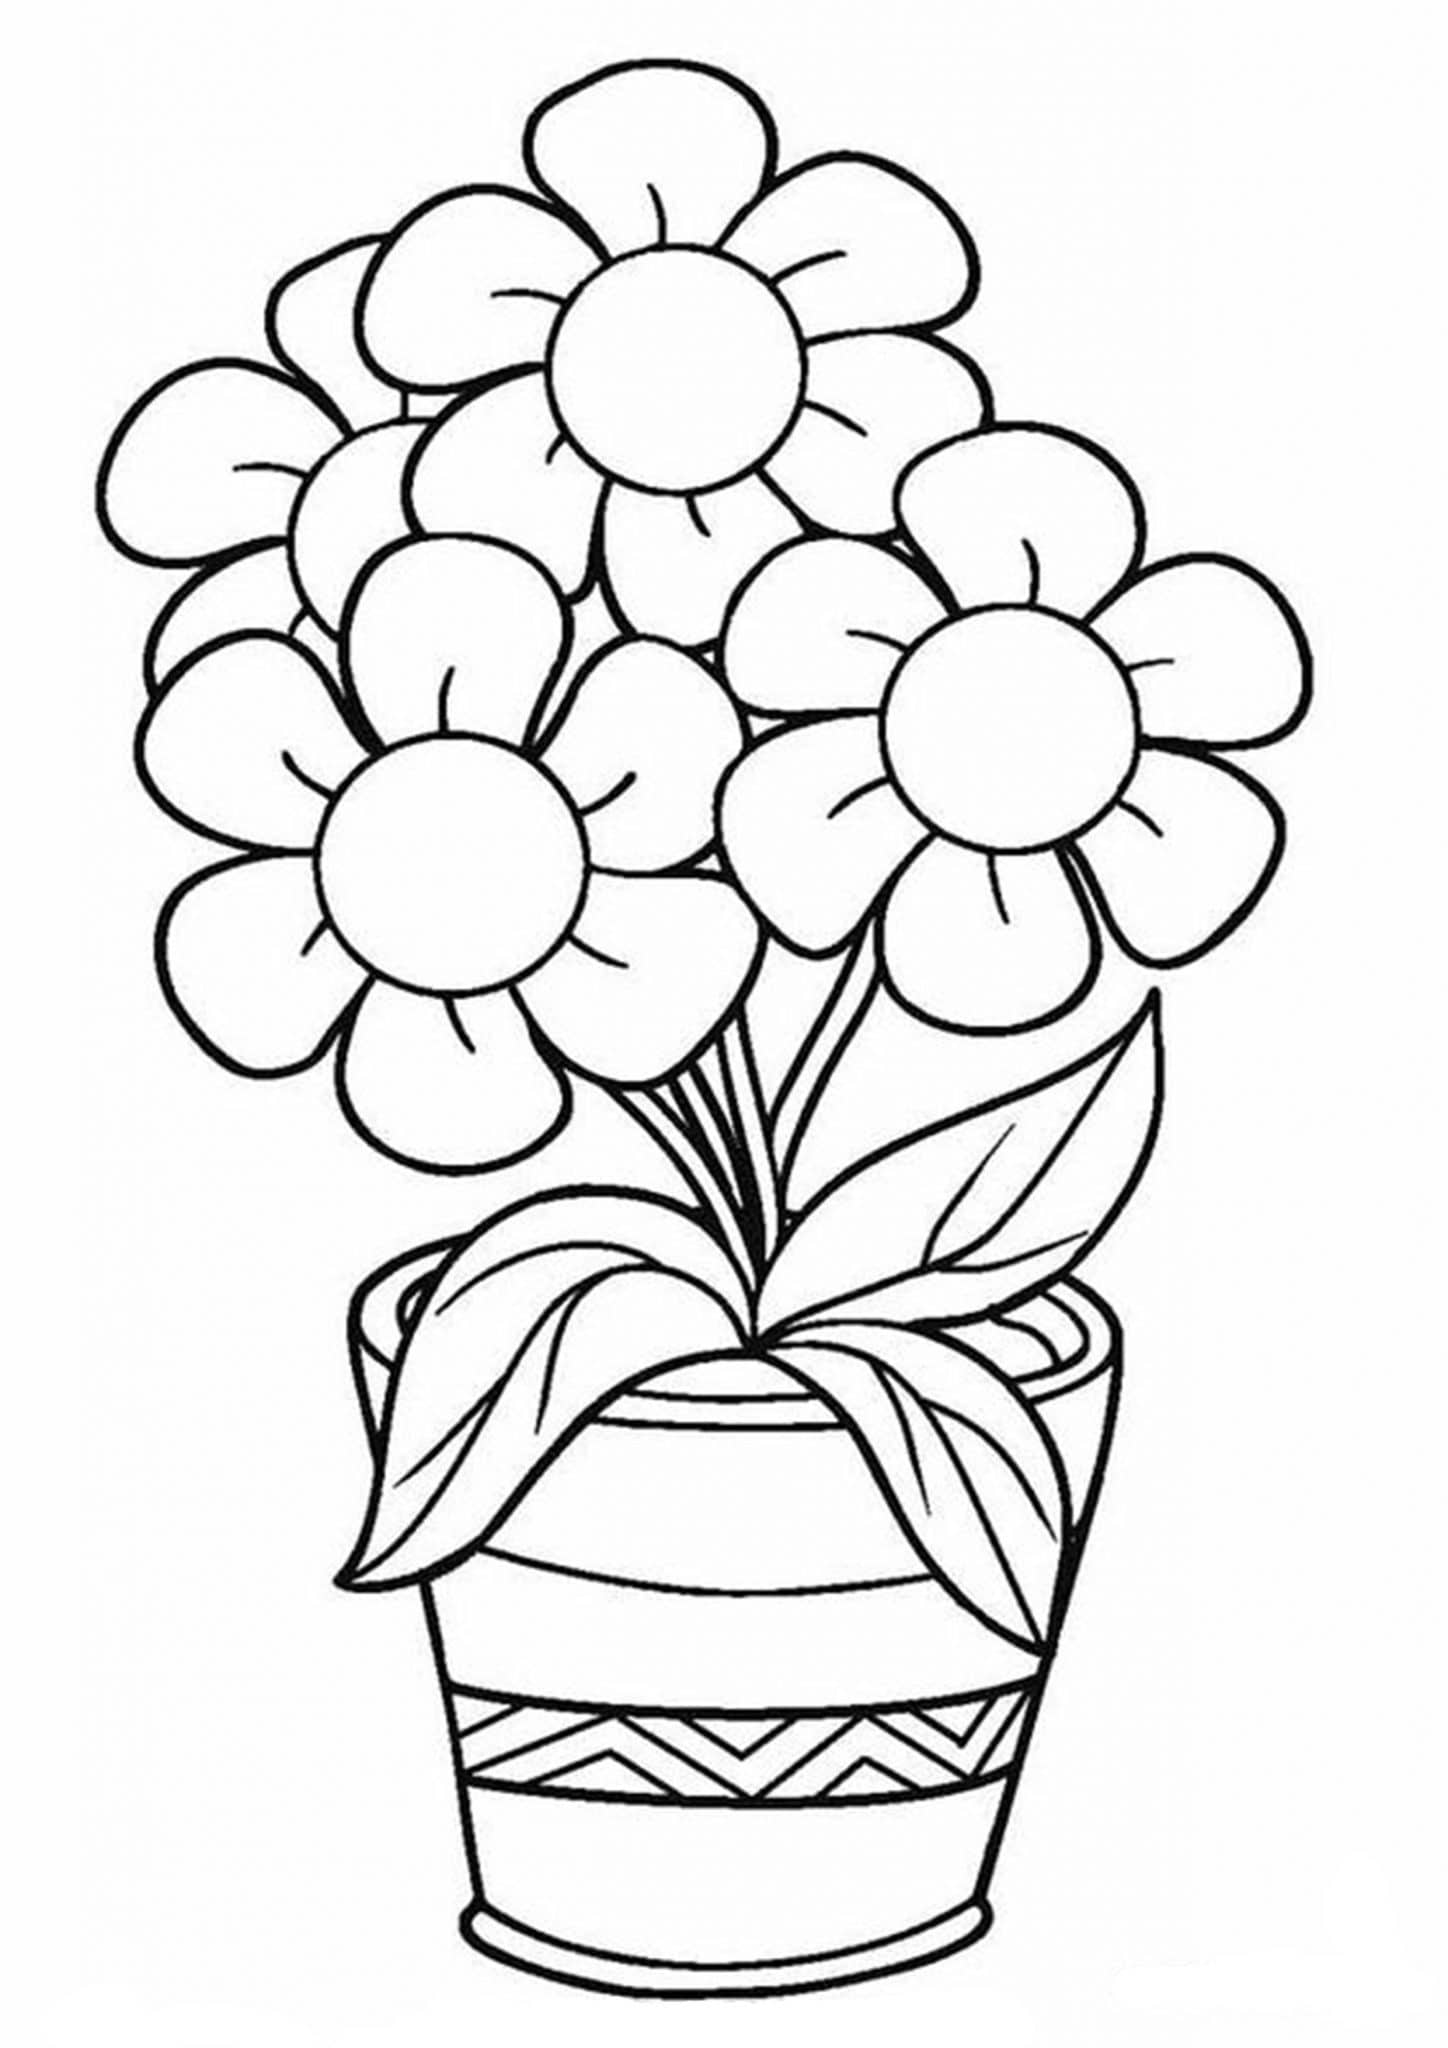 printable flowers coloring pages bouquet of flowers coloring pages for childrens printable flowers printable pages coloring